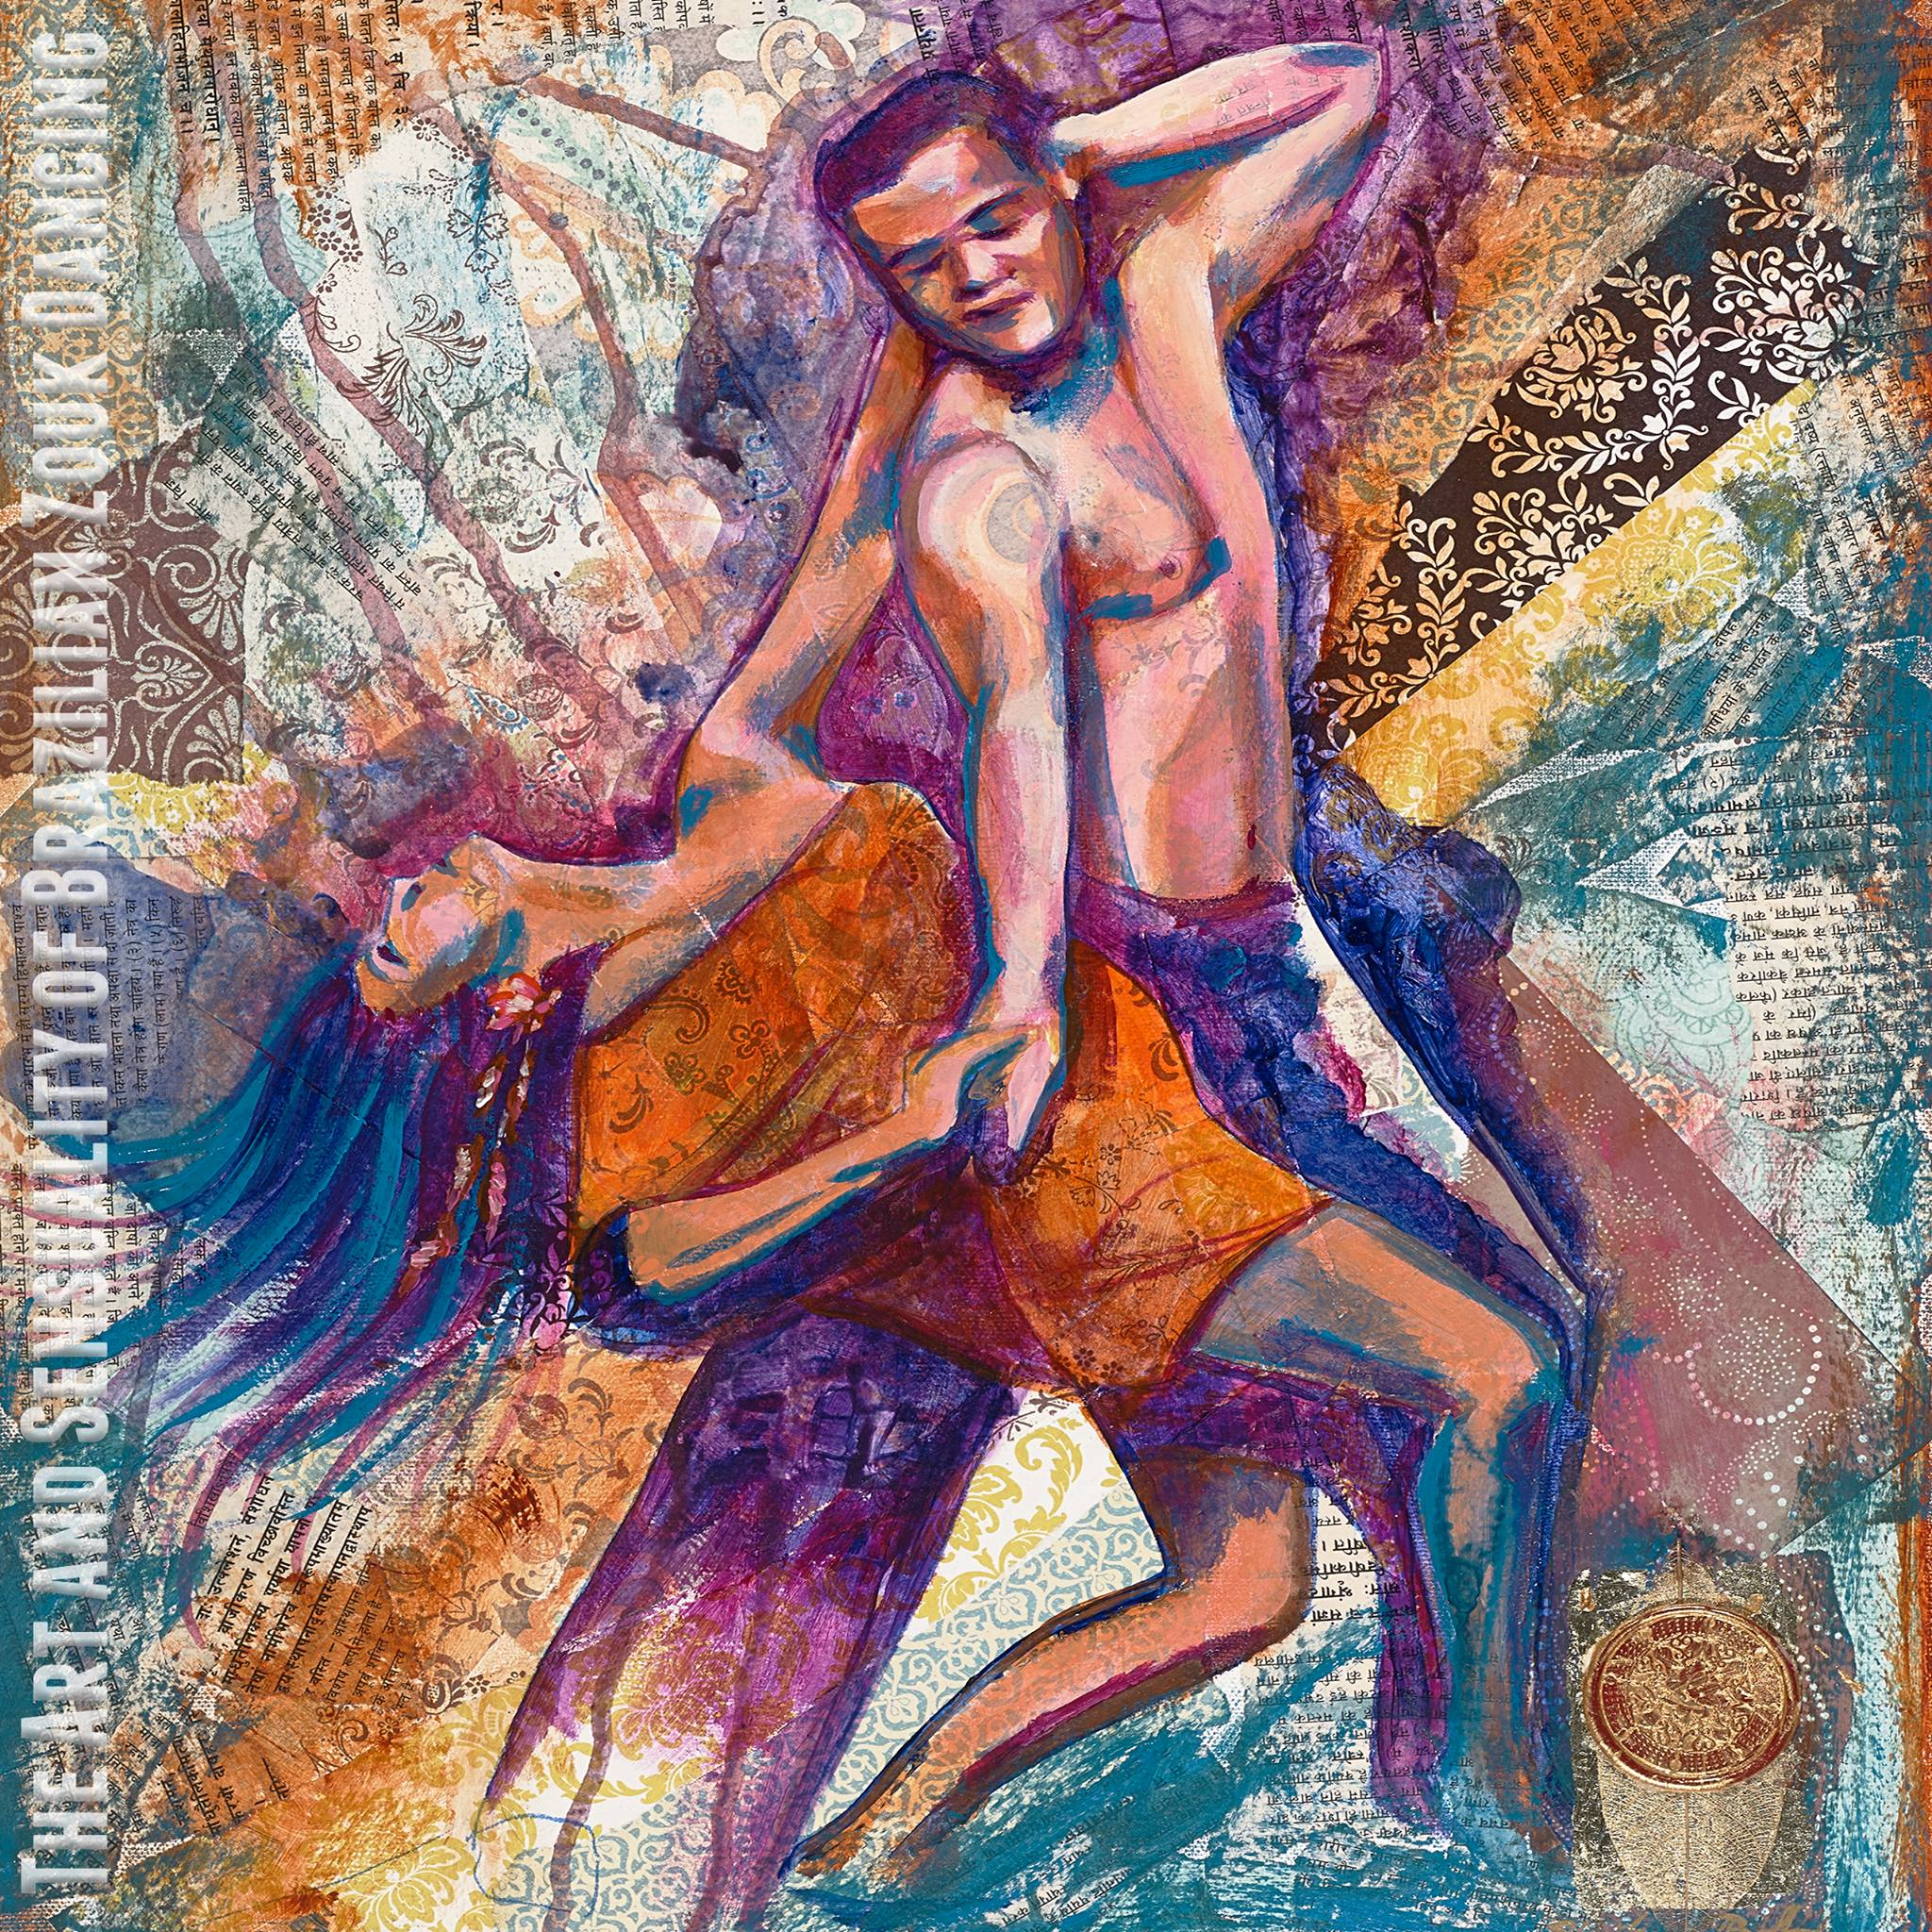 Marie's mentioned book cover ; a portrait of Marie & Alex Chang dancing Zouk painted by Stephanie Bolton